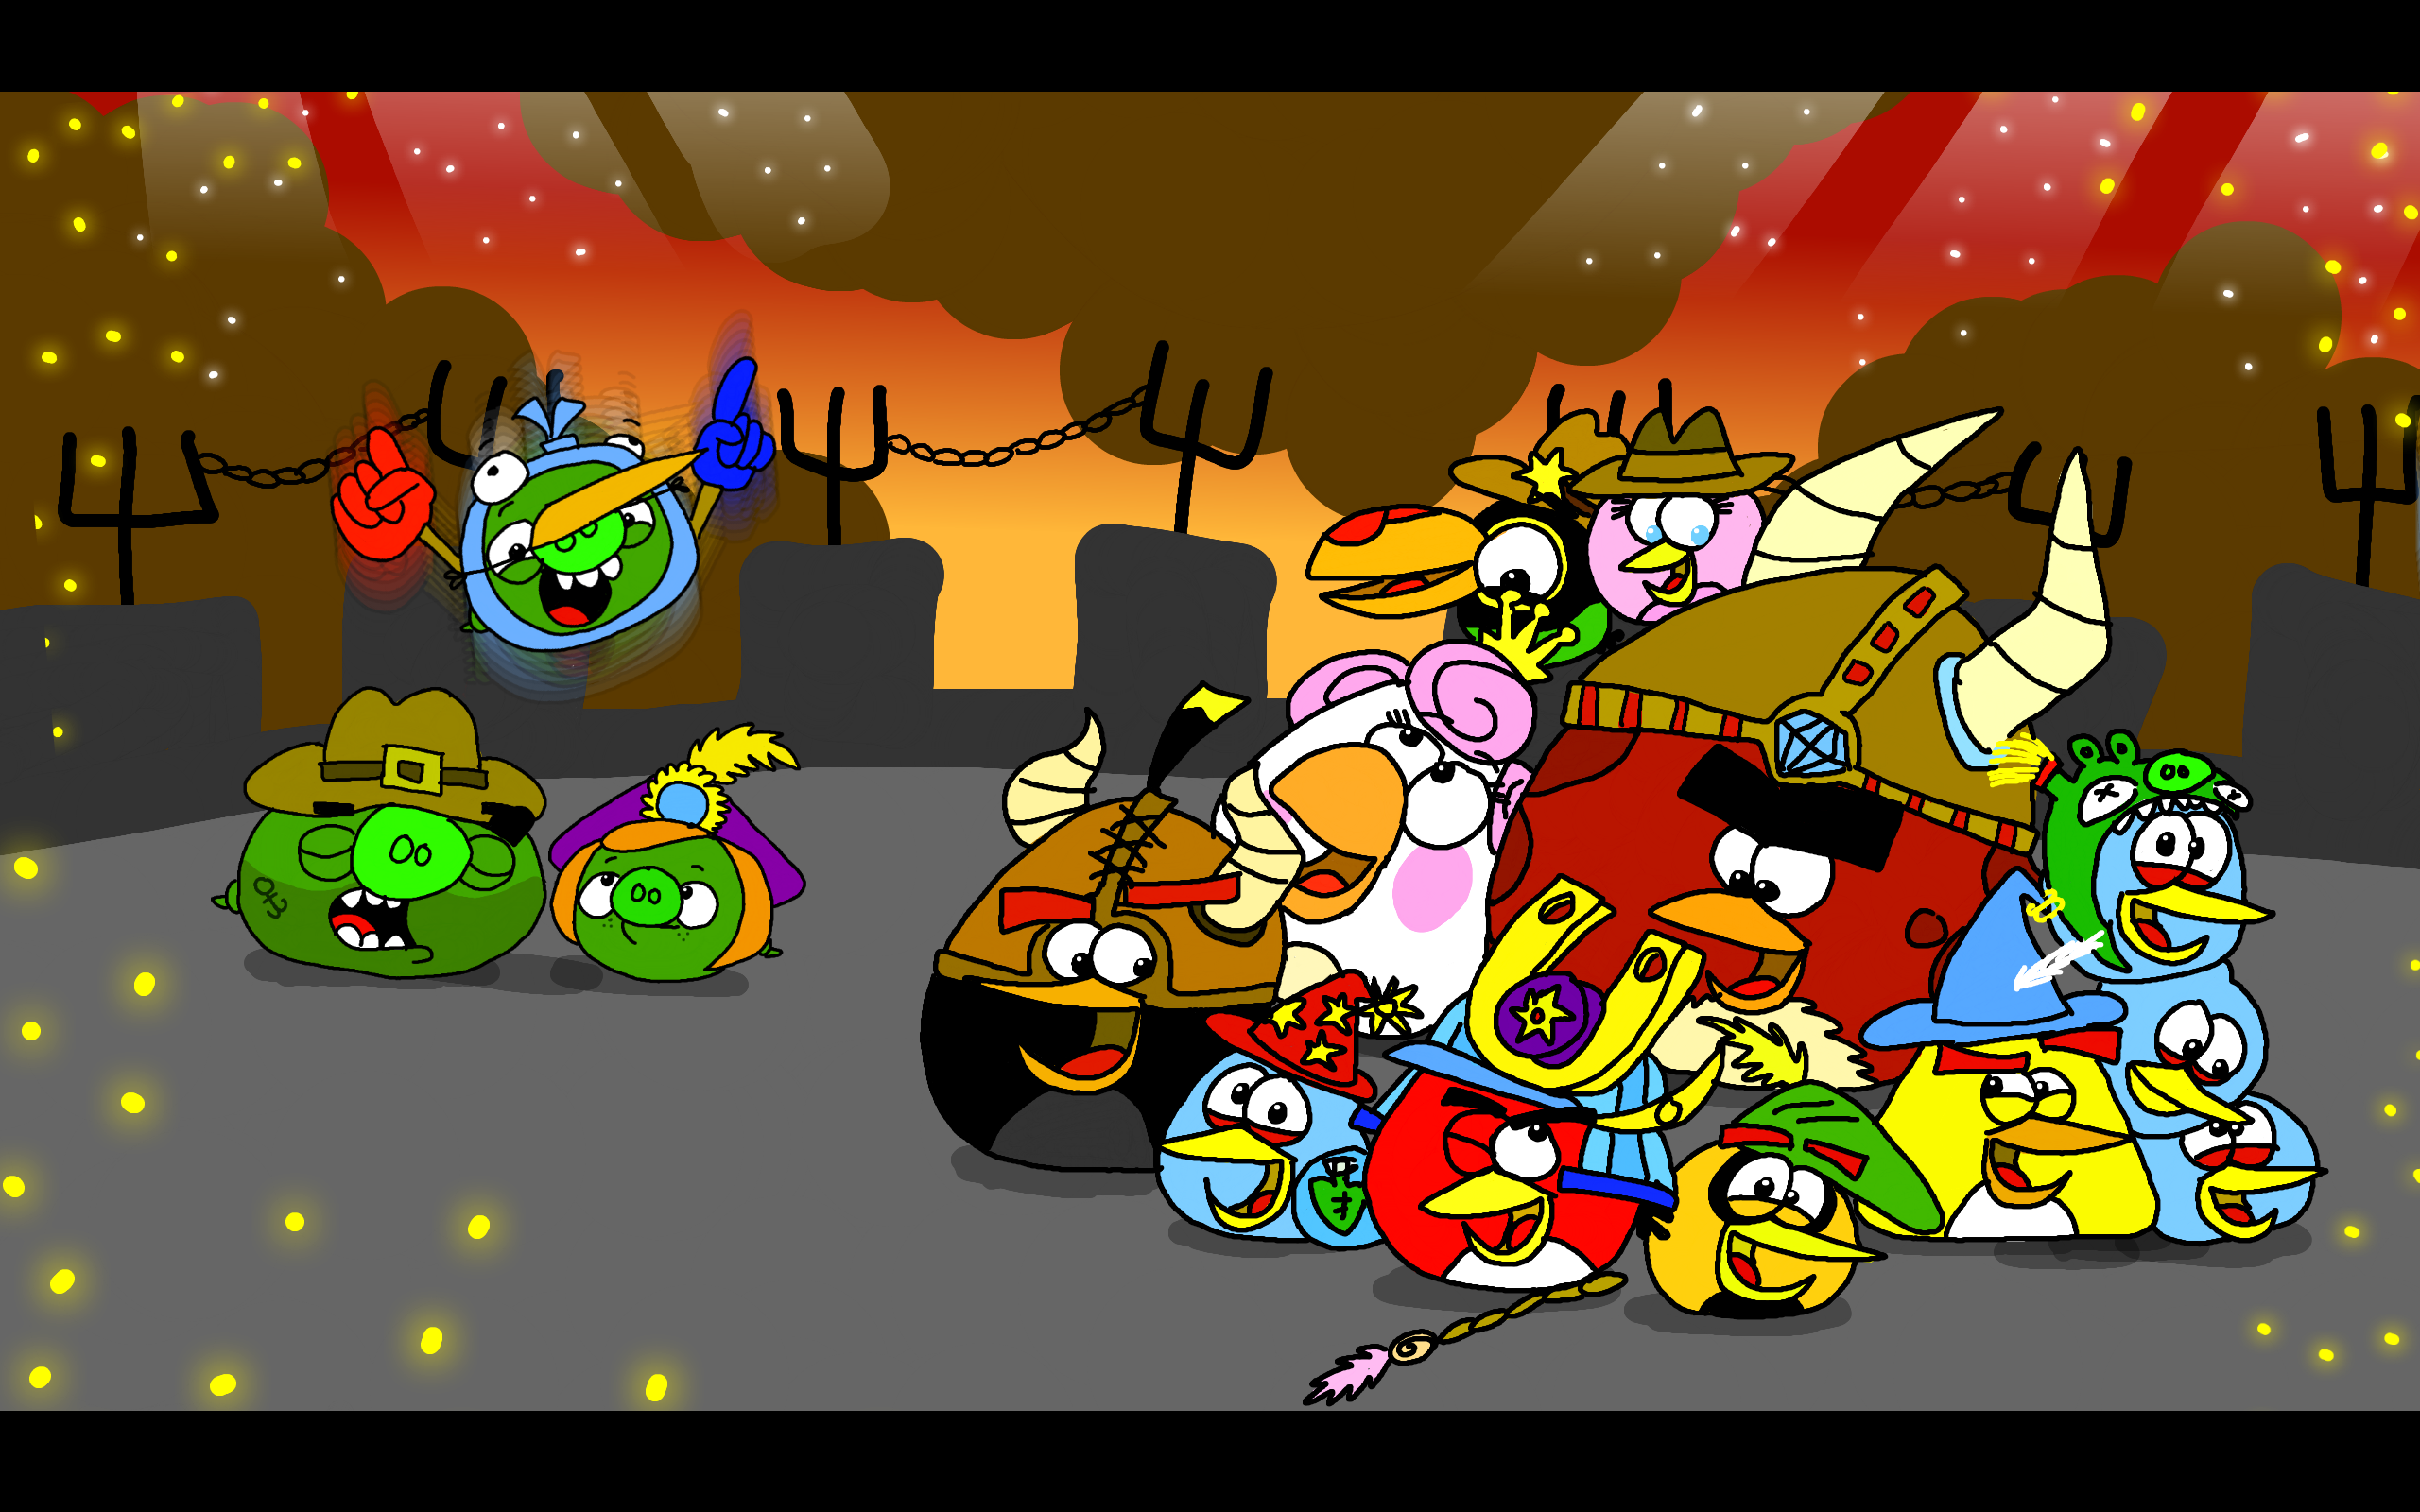 Image currently unavailable. Go to www.generator.acthack.com and choose Angry Birds Epic RPG image, you will be redirect to Angry Birds Epic RPG Generator site.